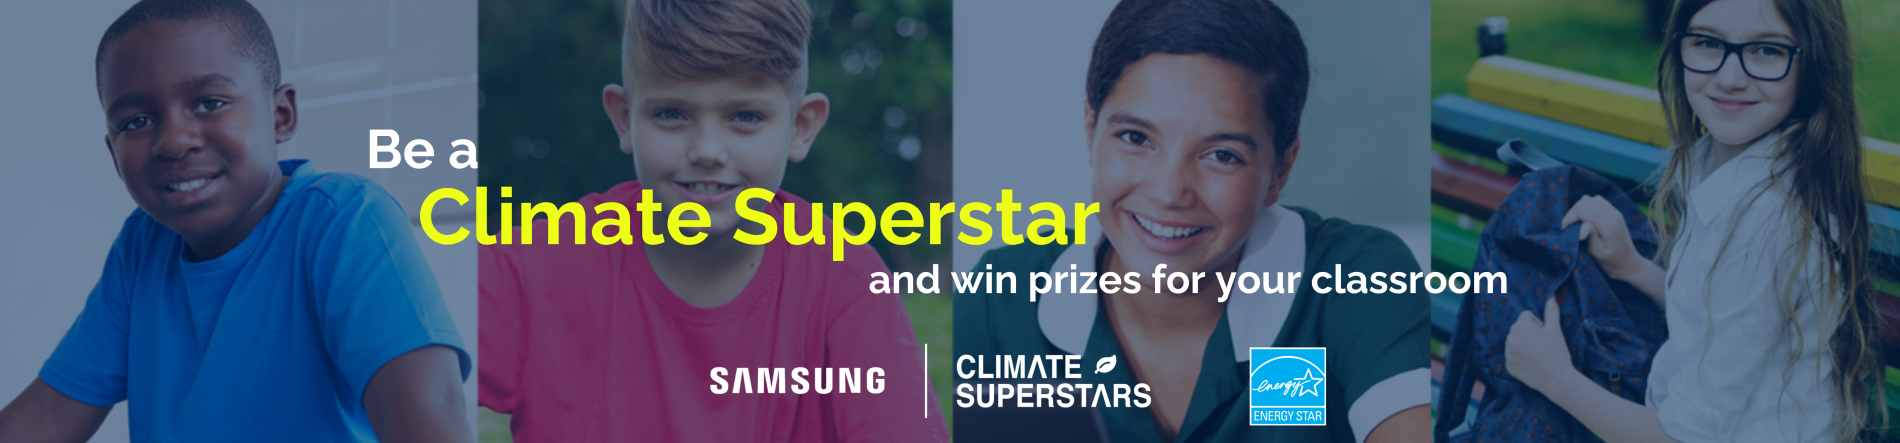 Be a Climate Superstar | ENERGY STAR | Samsung